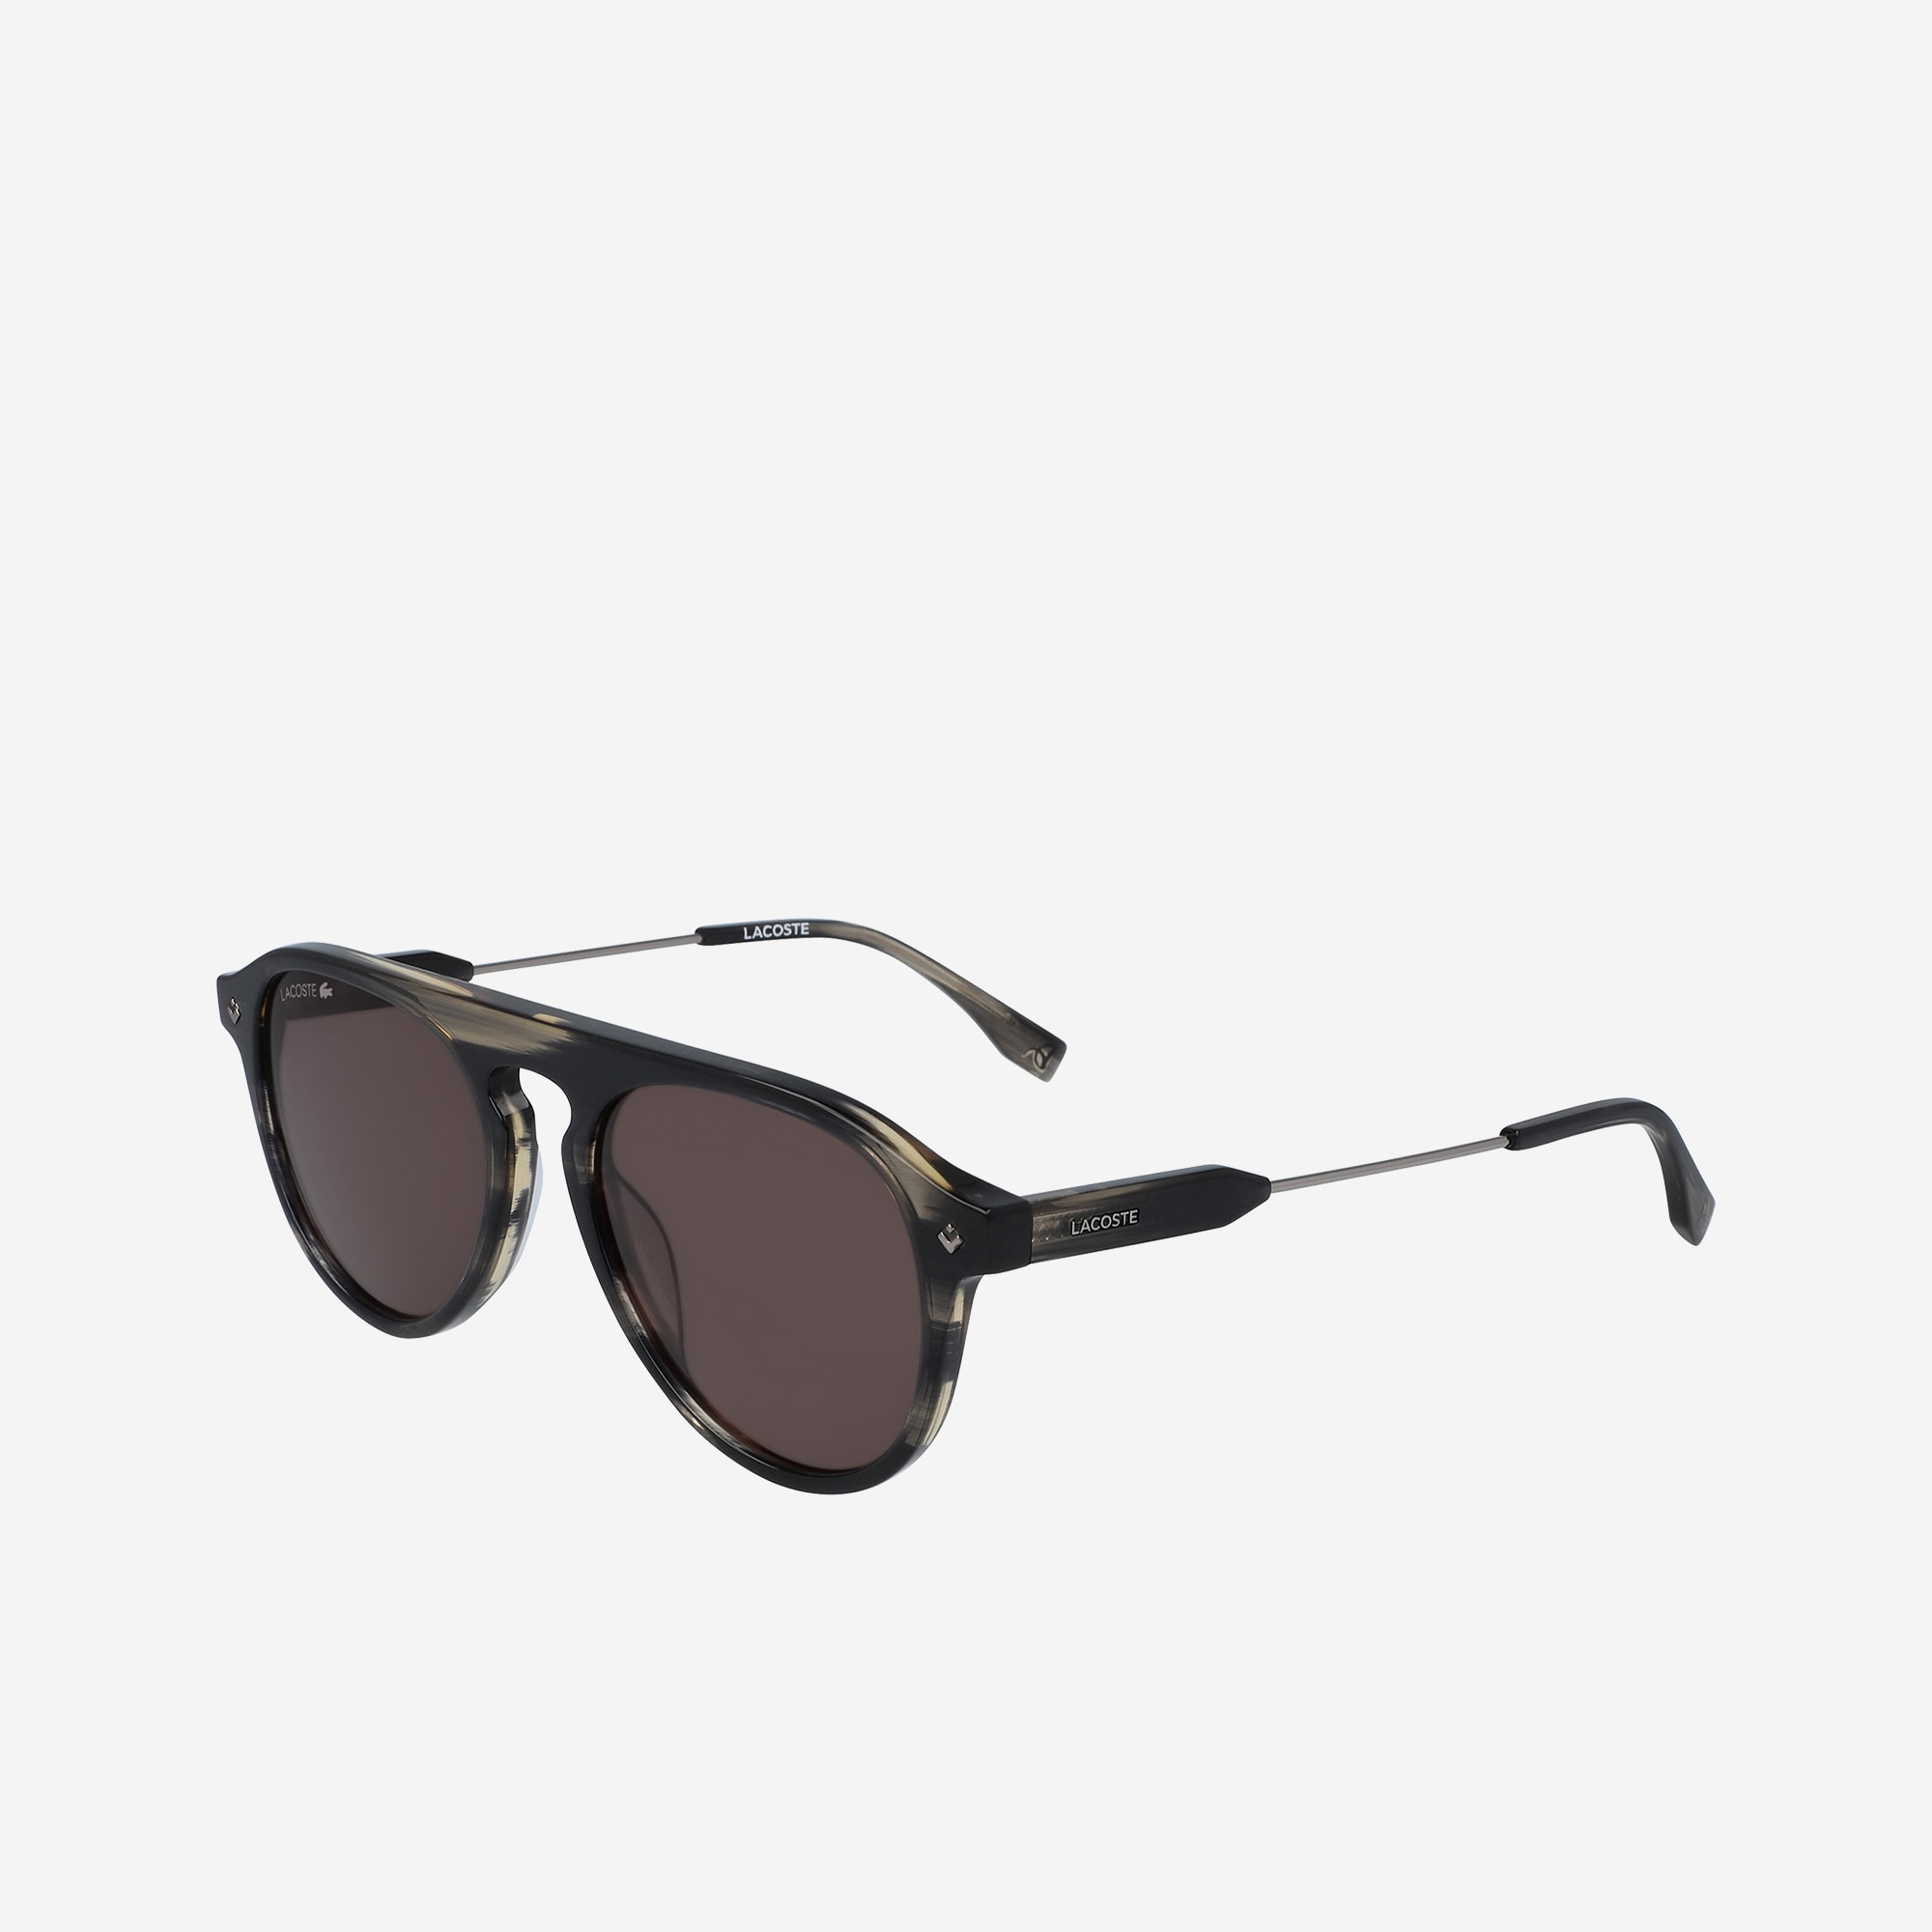 5adebf4780e4 Men s Sunglasses